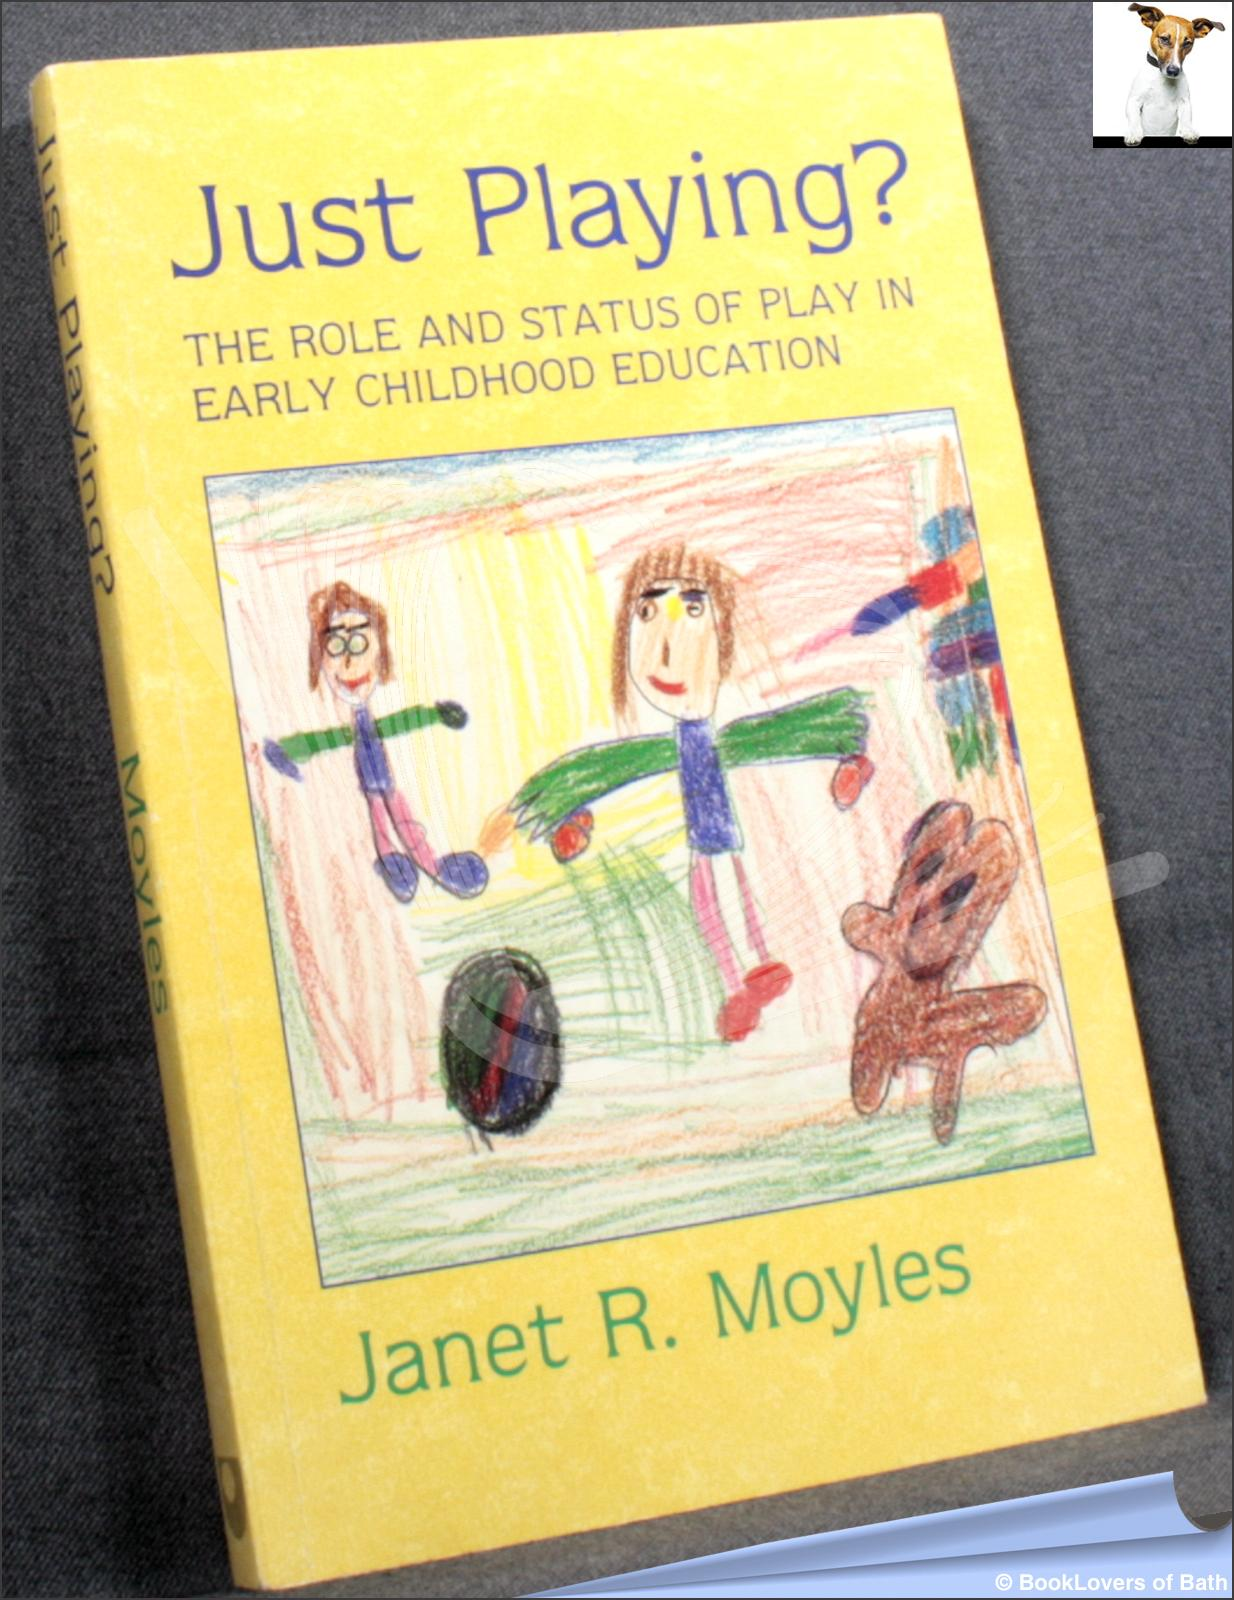 Just Playing?: The Role and Status of Play in Early Childhood Education - Janet R. Moyles